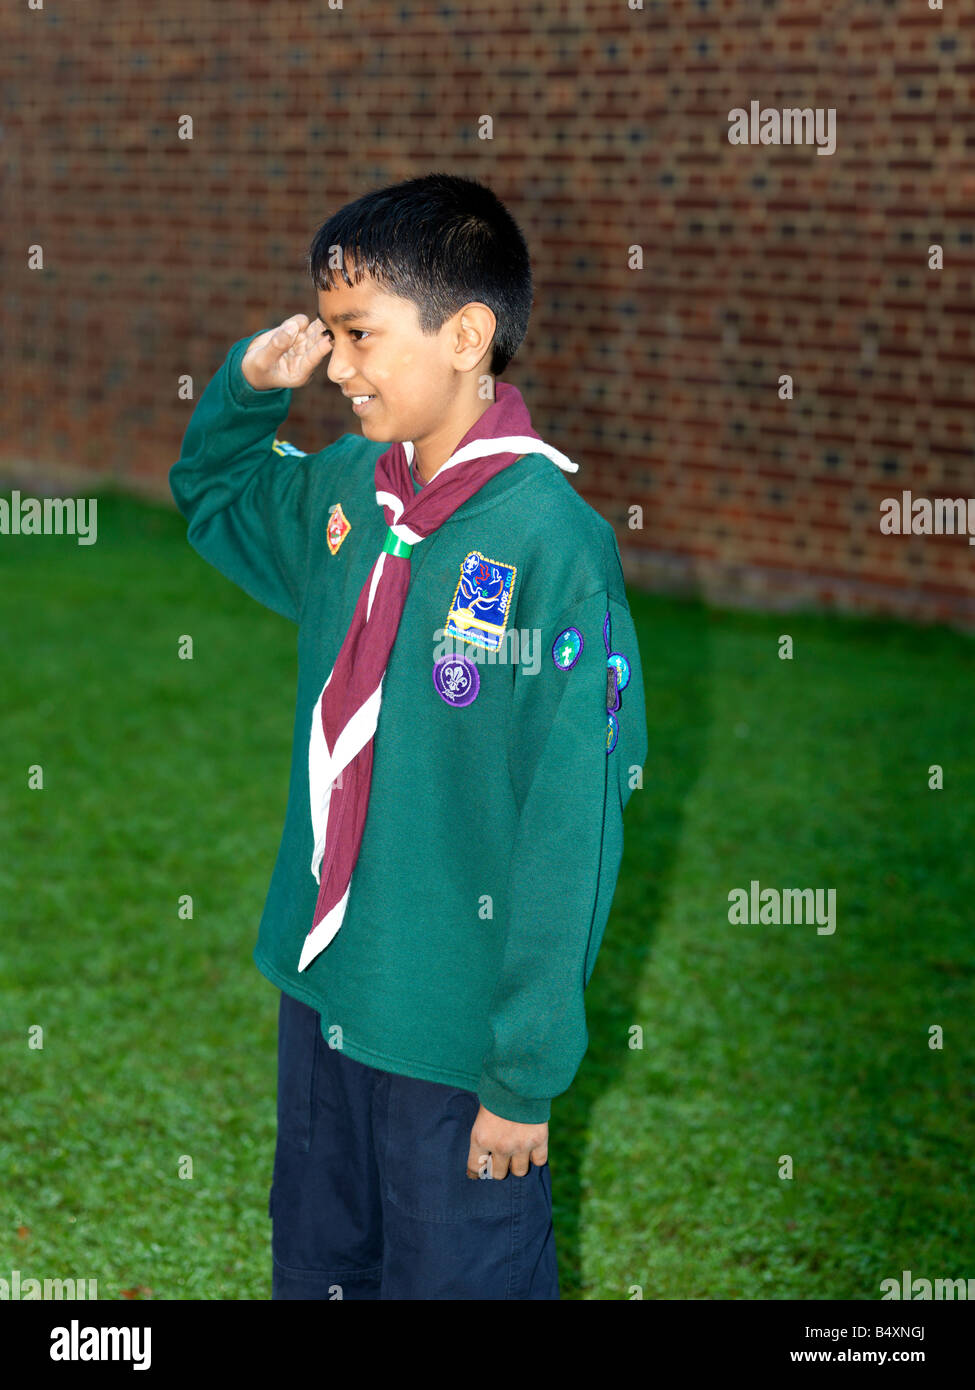 Cub Scout In Uniform with Badges Stock Photo: 20256674 - Alamy